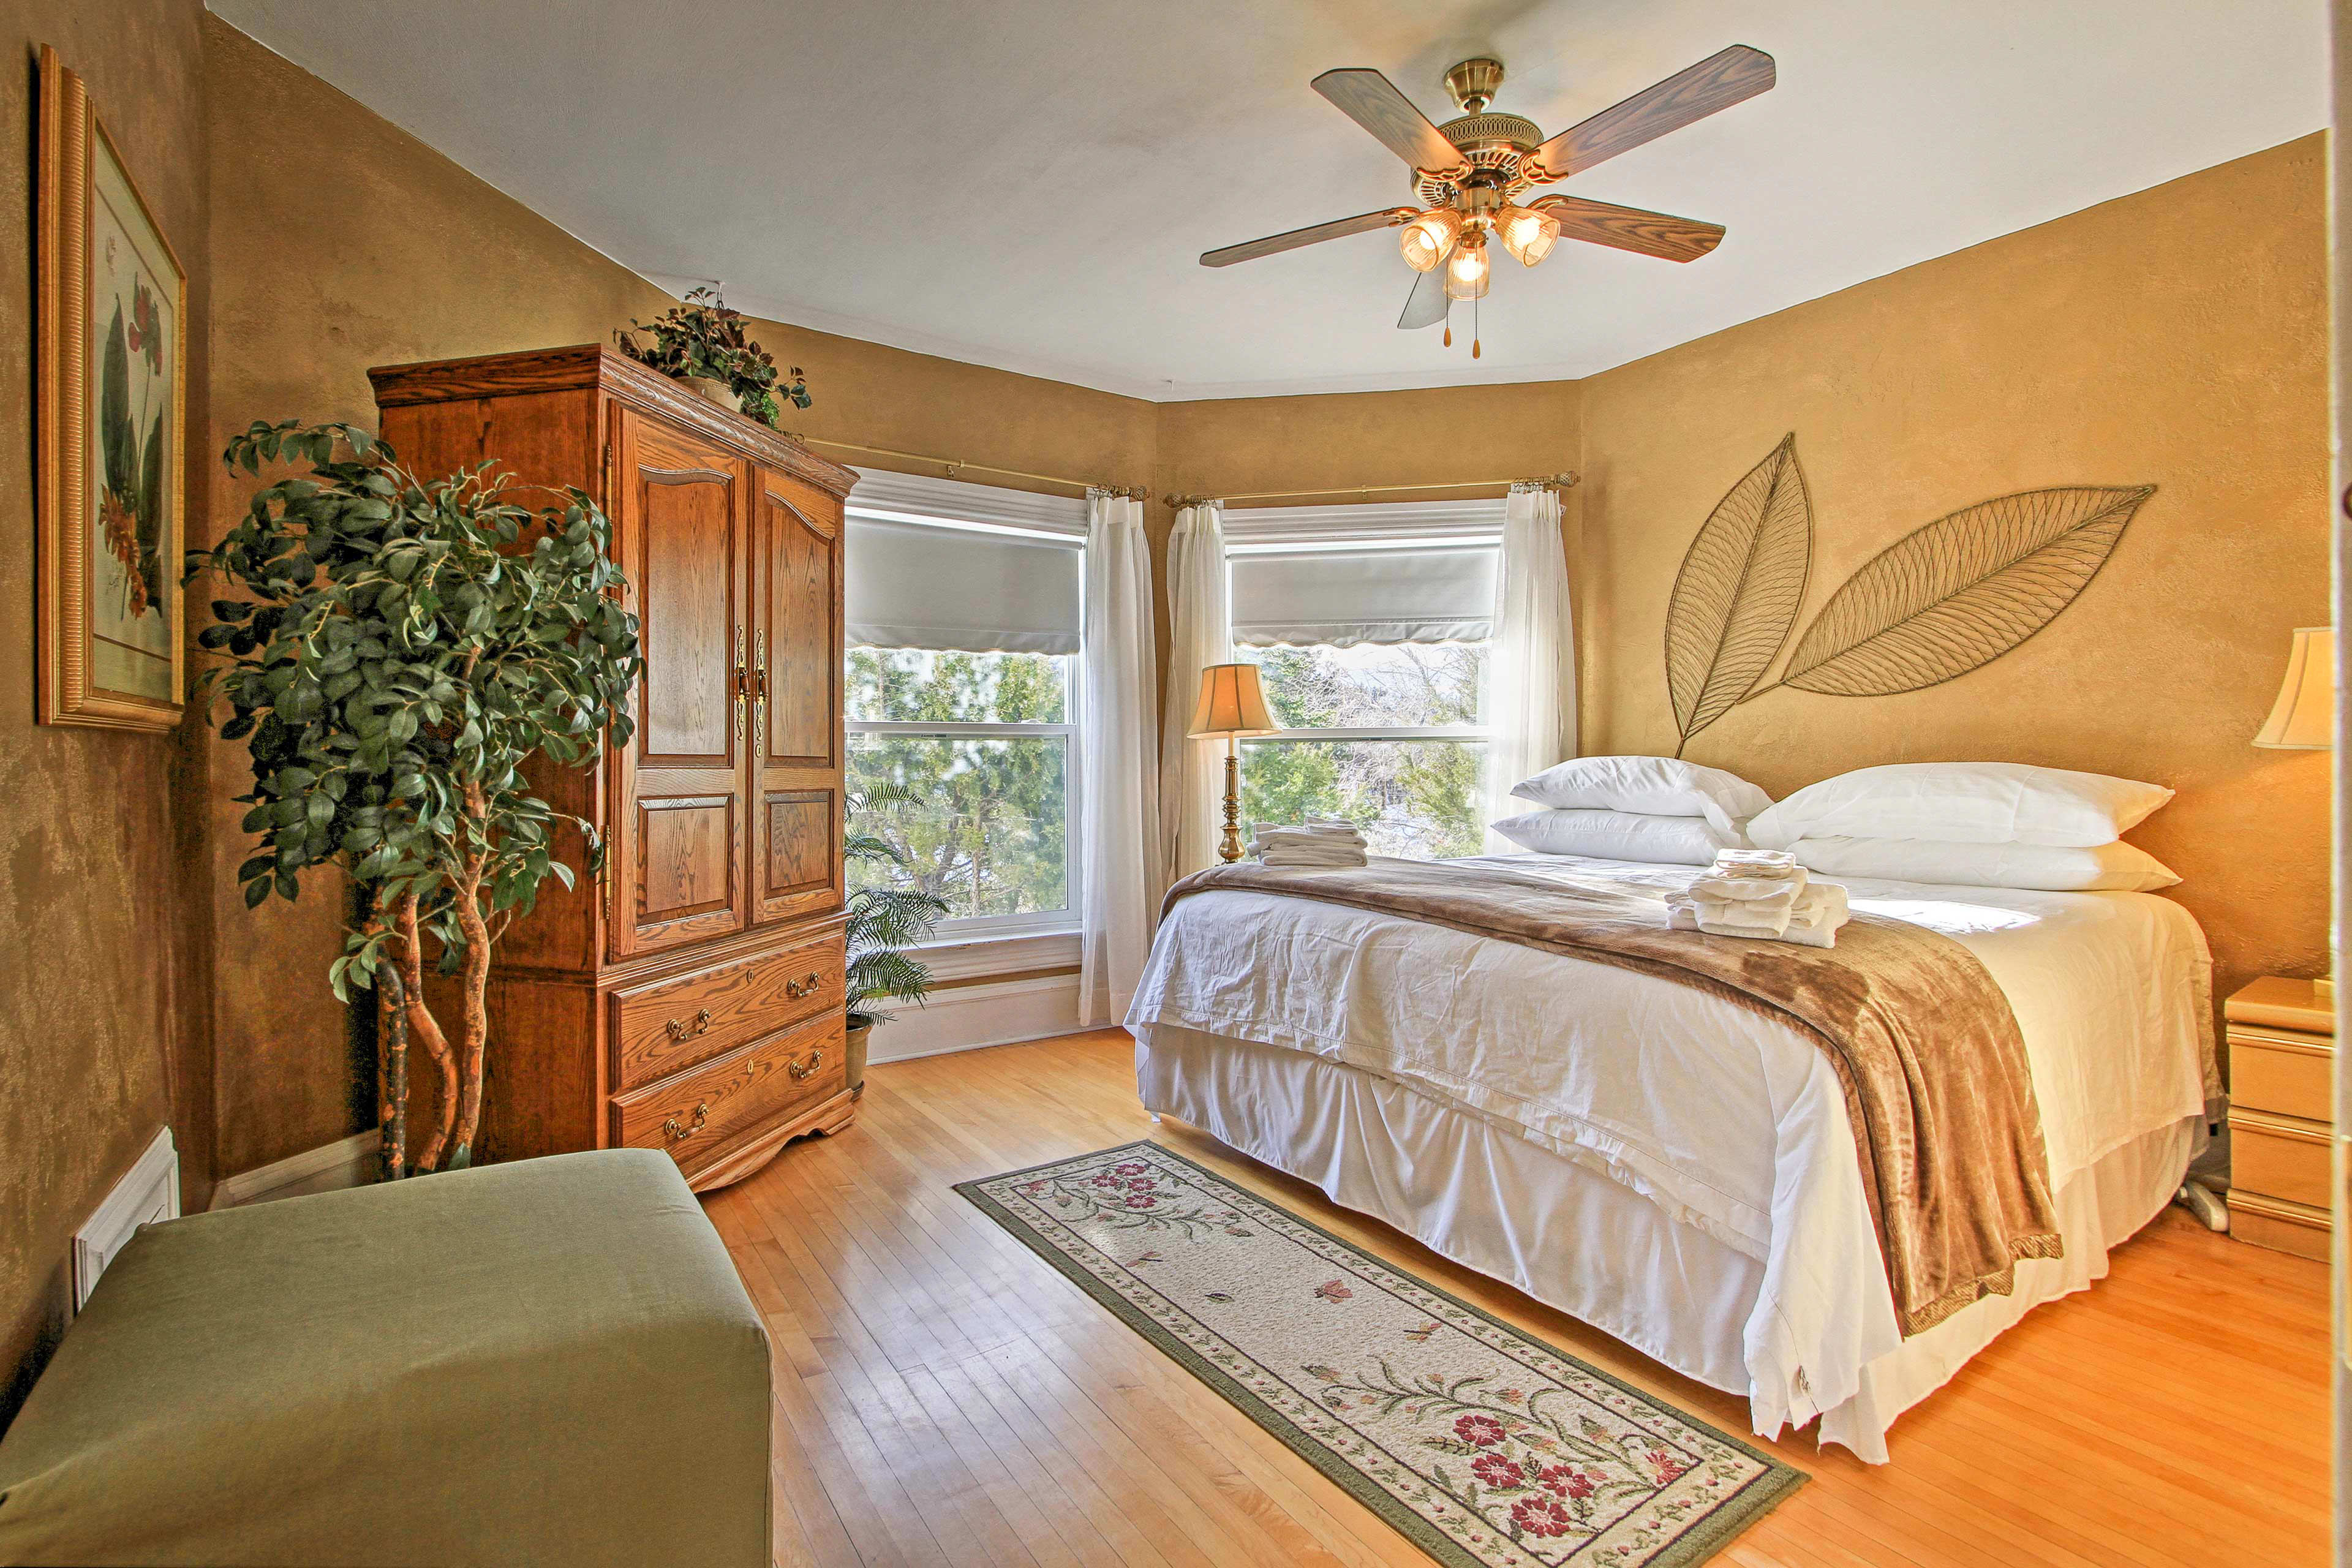 All of the bedrooms feature custom interiors and large windows.